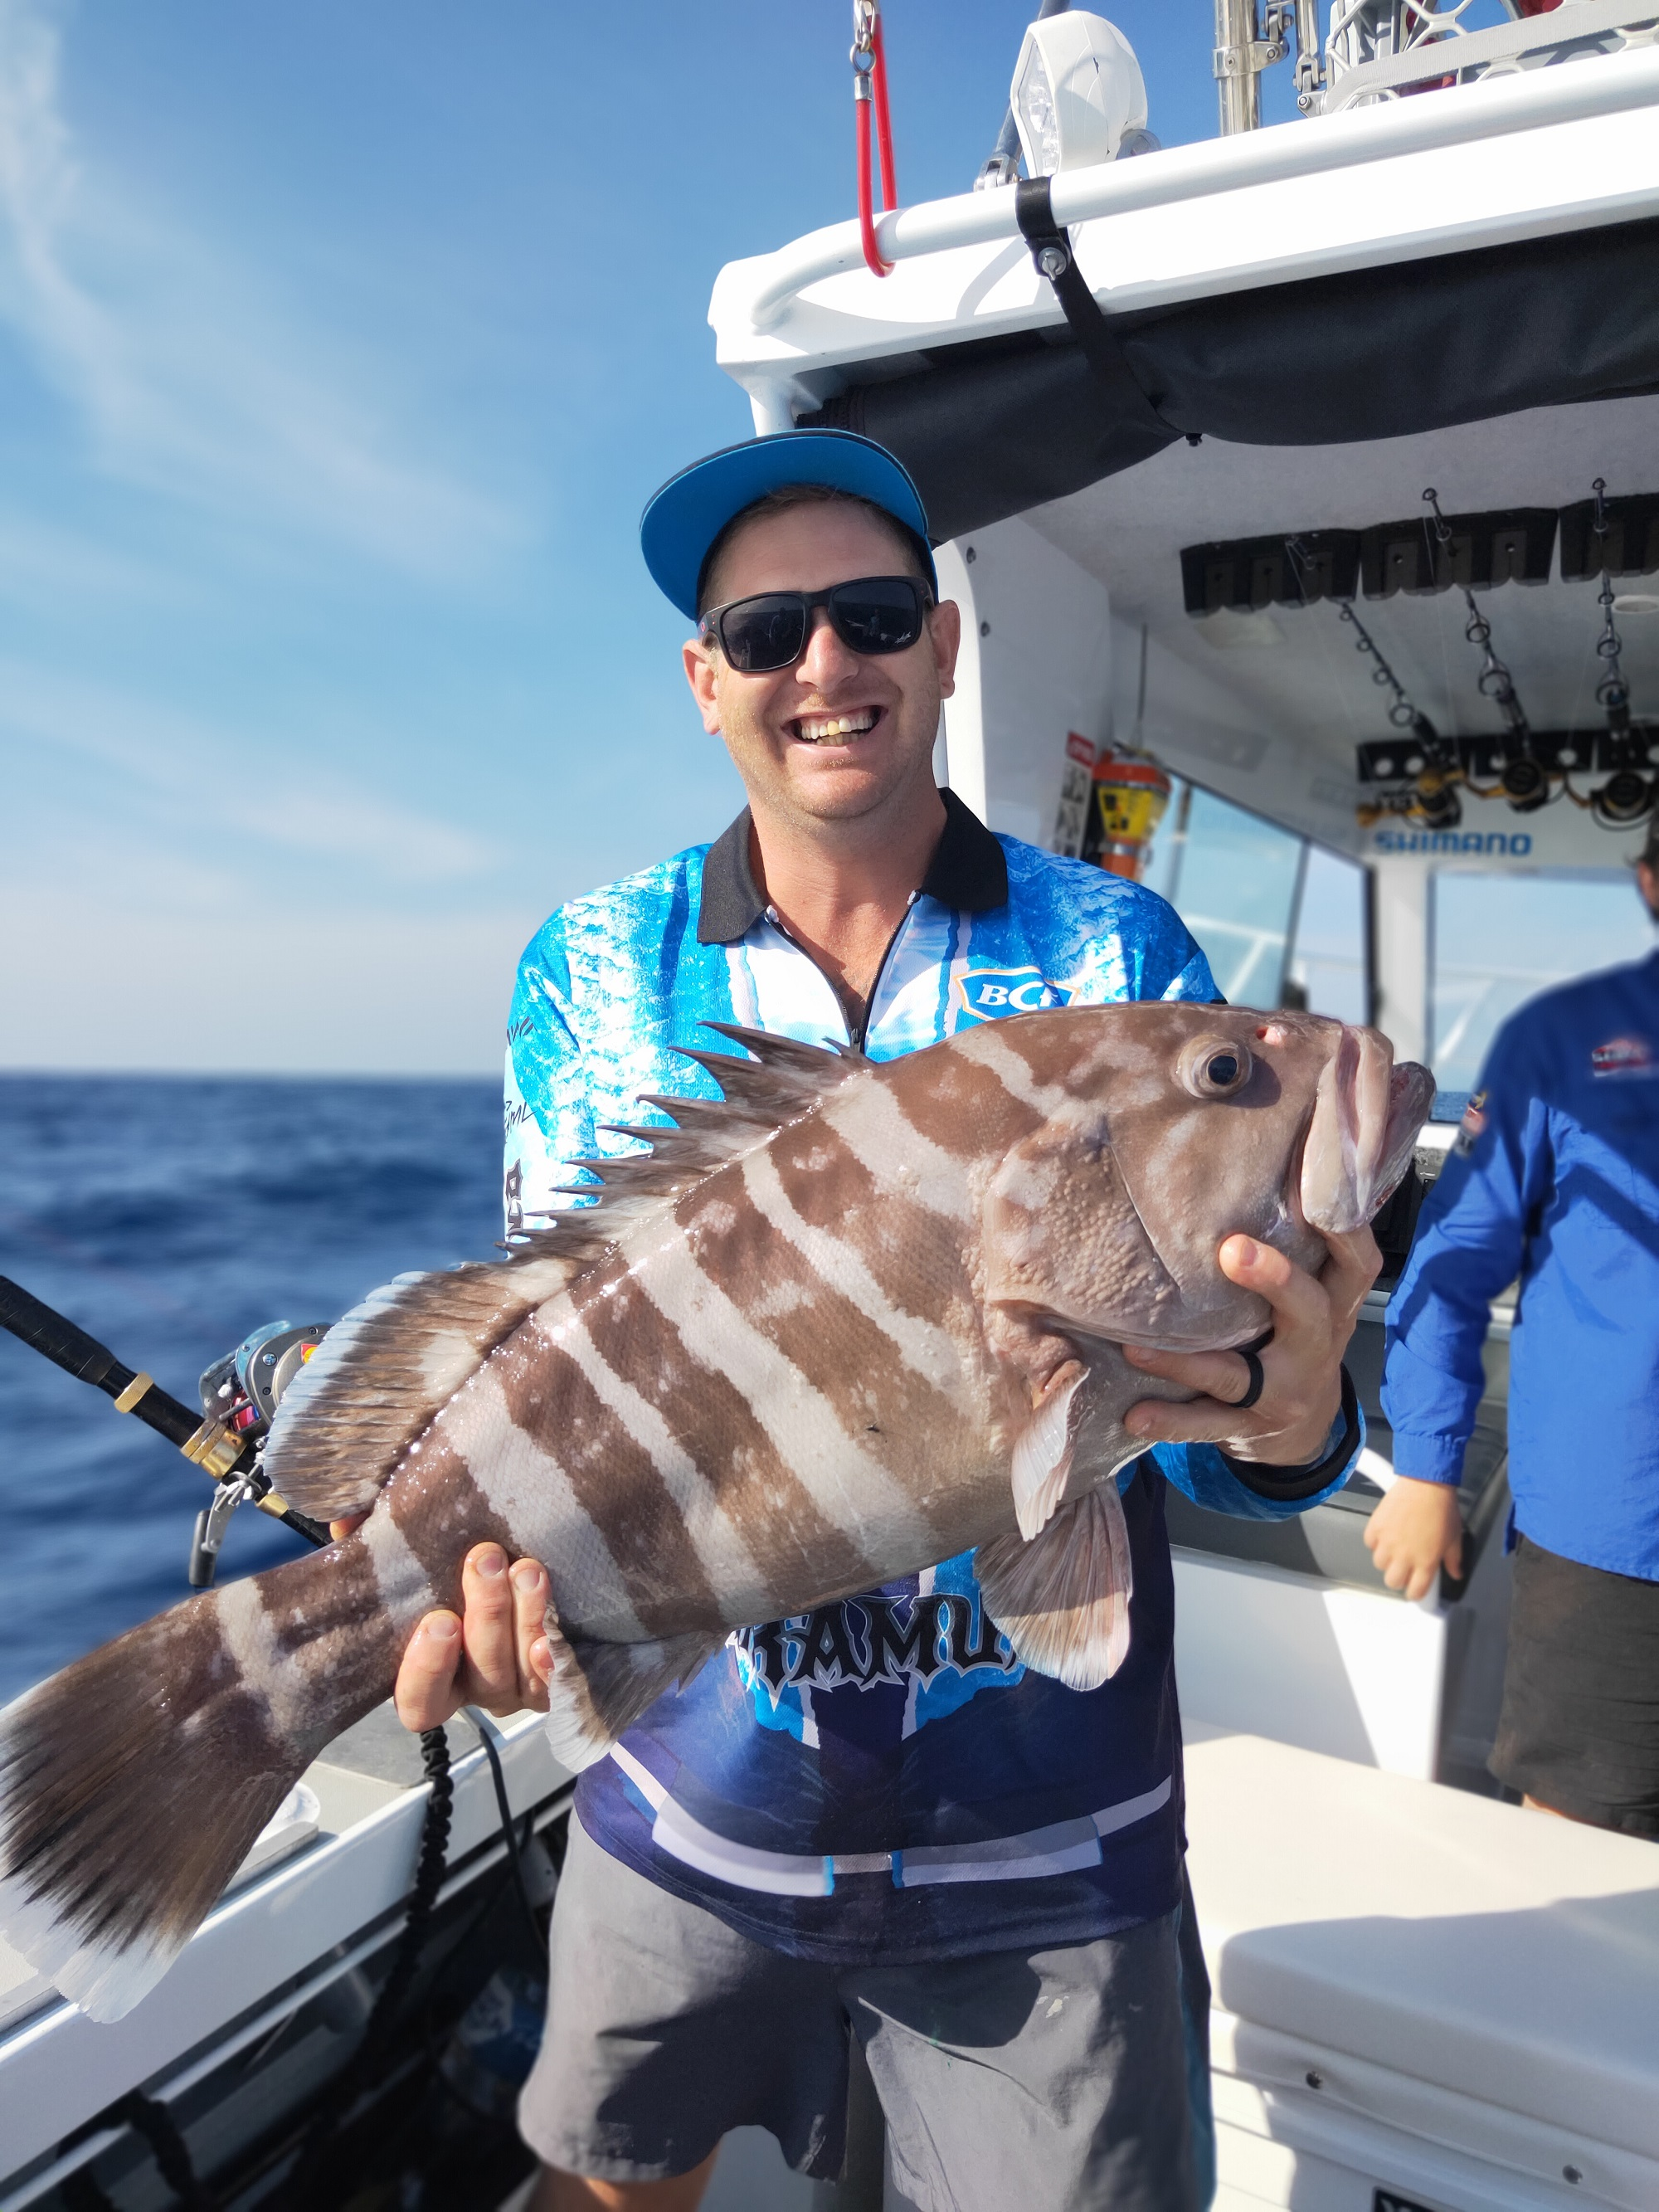 Groper catch on Best of Boat Worlds fishing charter